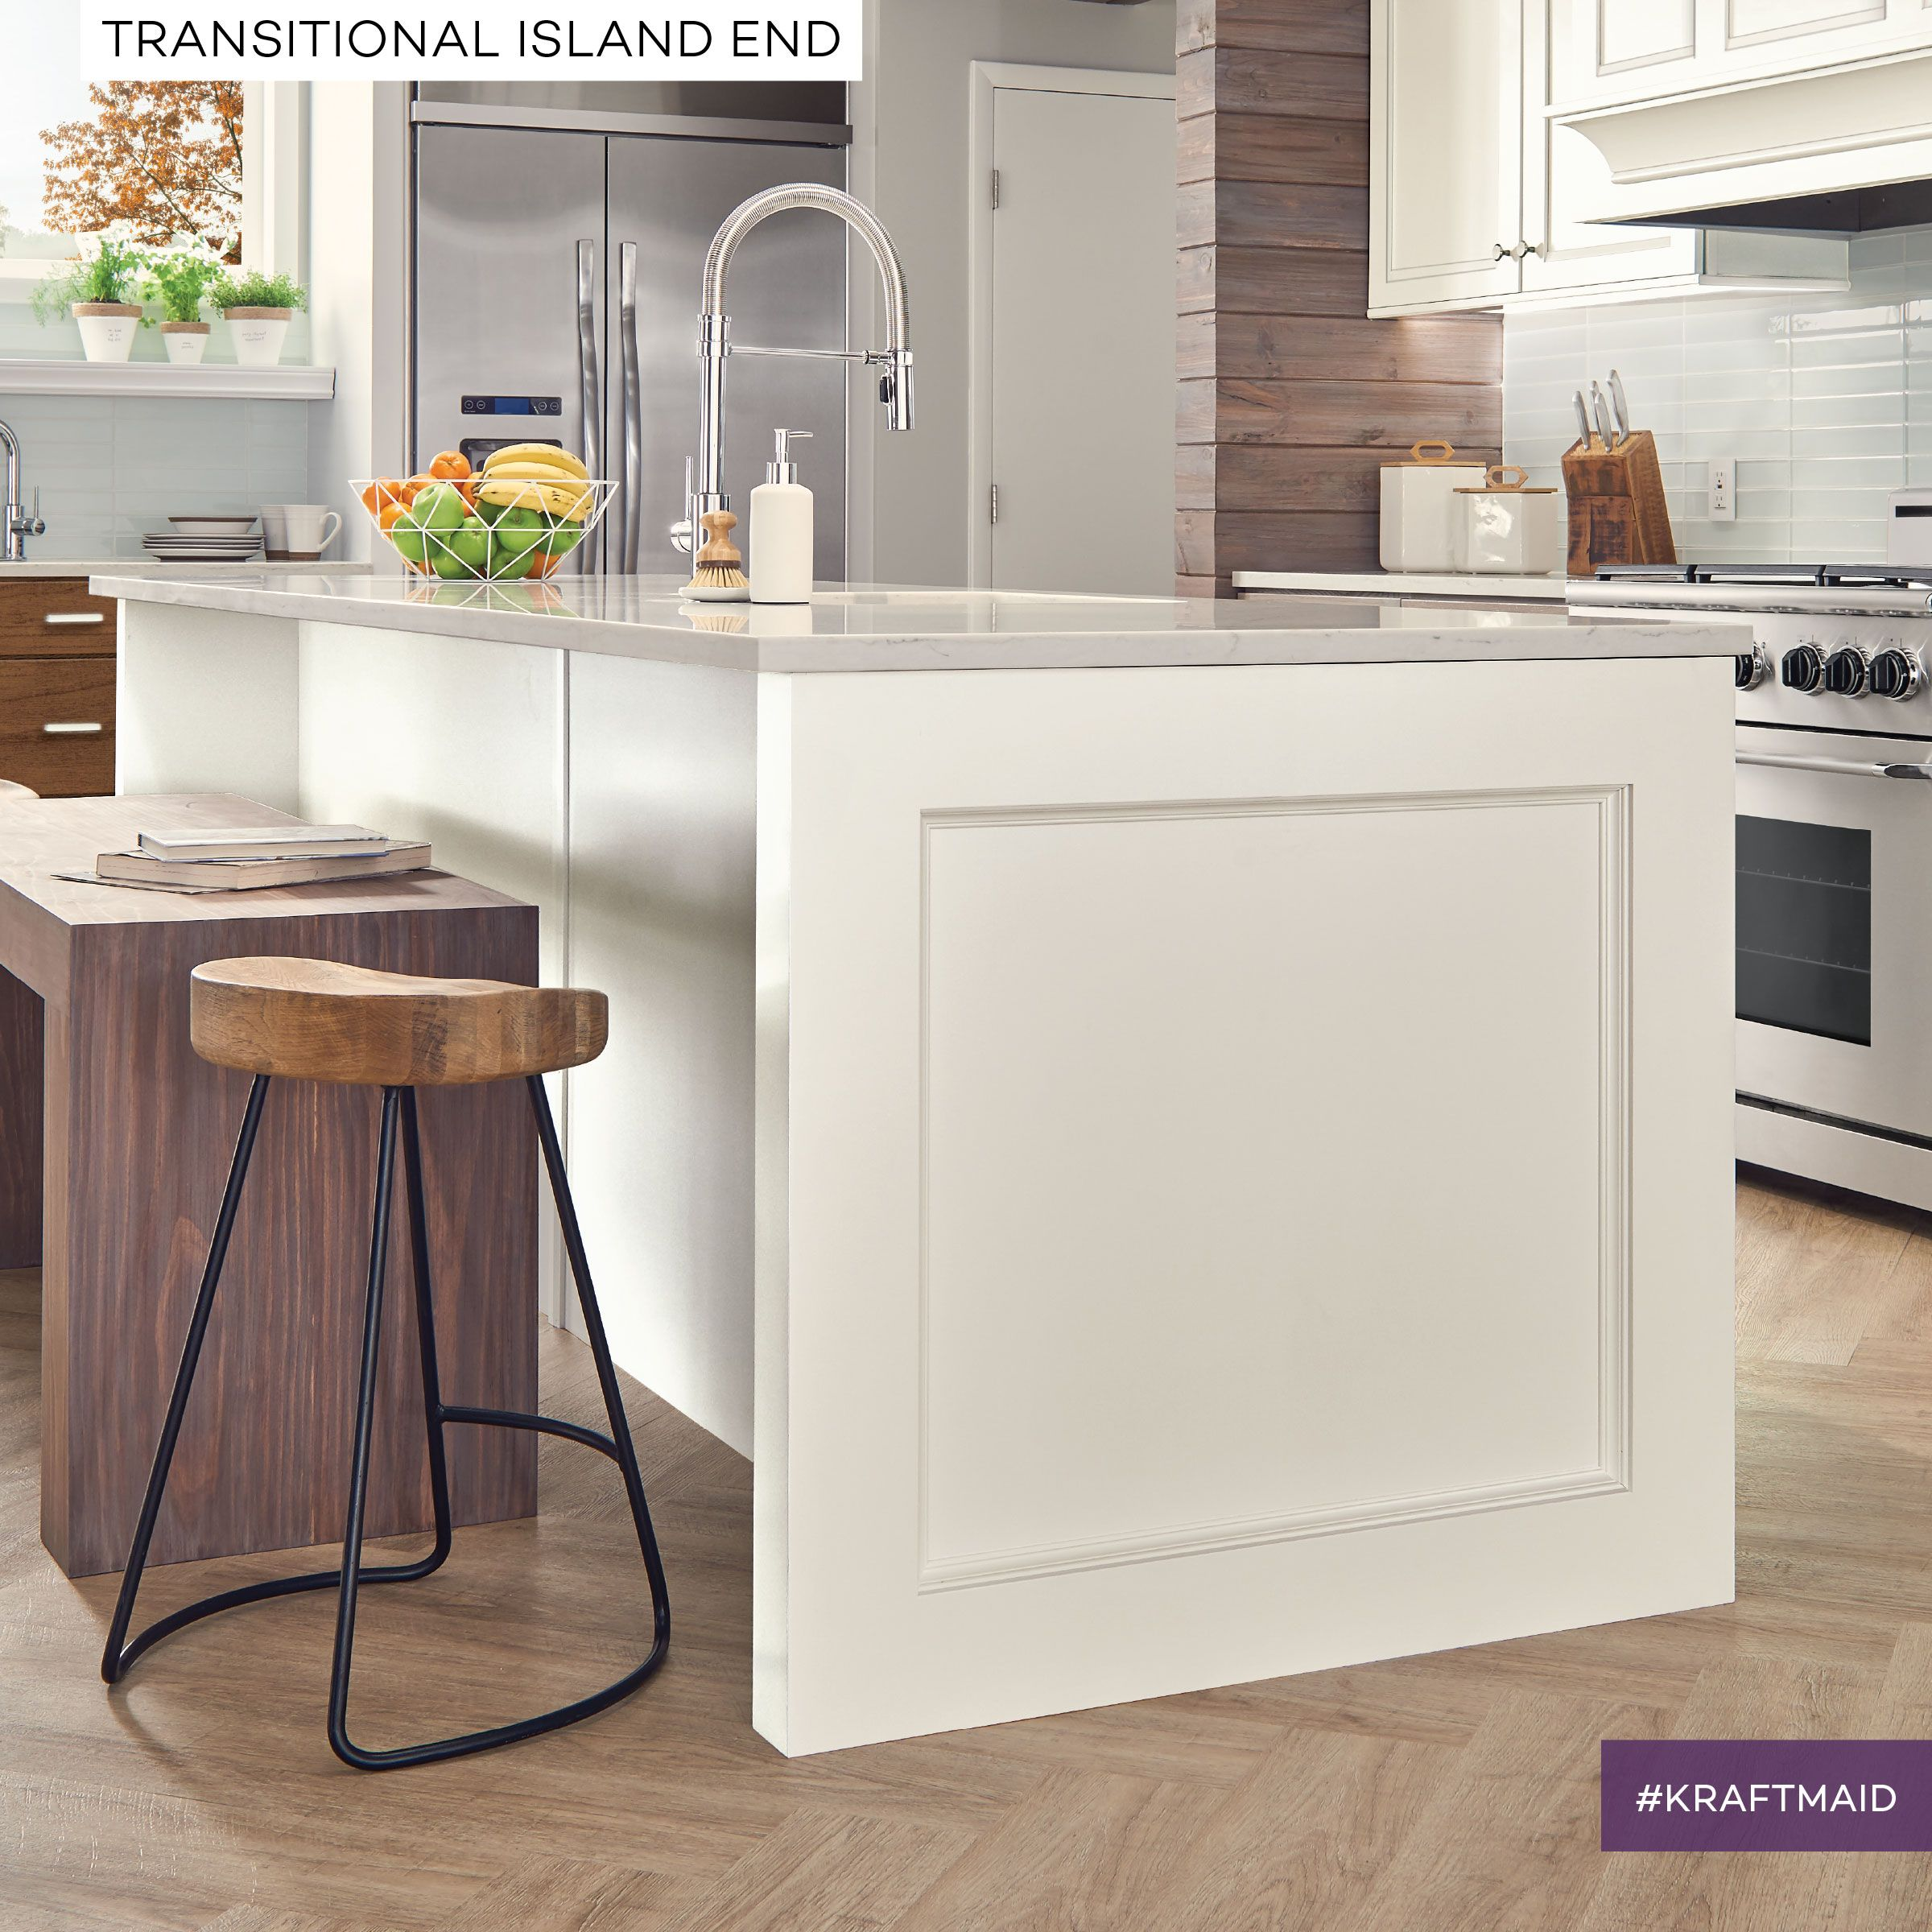 Add A Little Softness To A Modern Kitchen With A KraftMaid - Kraftmaid kitchen island